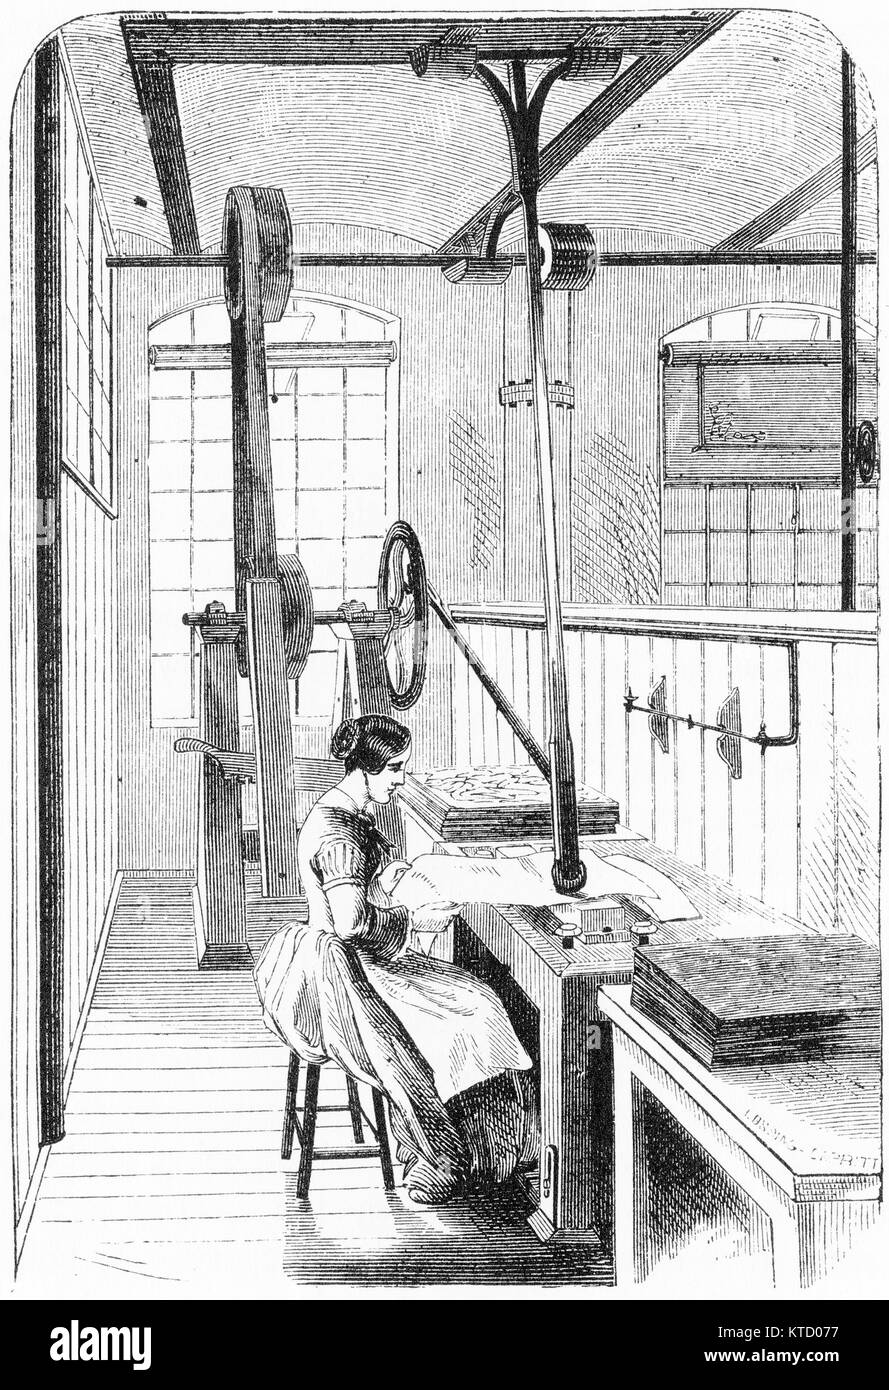 Engraving of a woman burnishing sheets of paper at a printing company in New York. From The Harper Establishment, - Stock Image